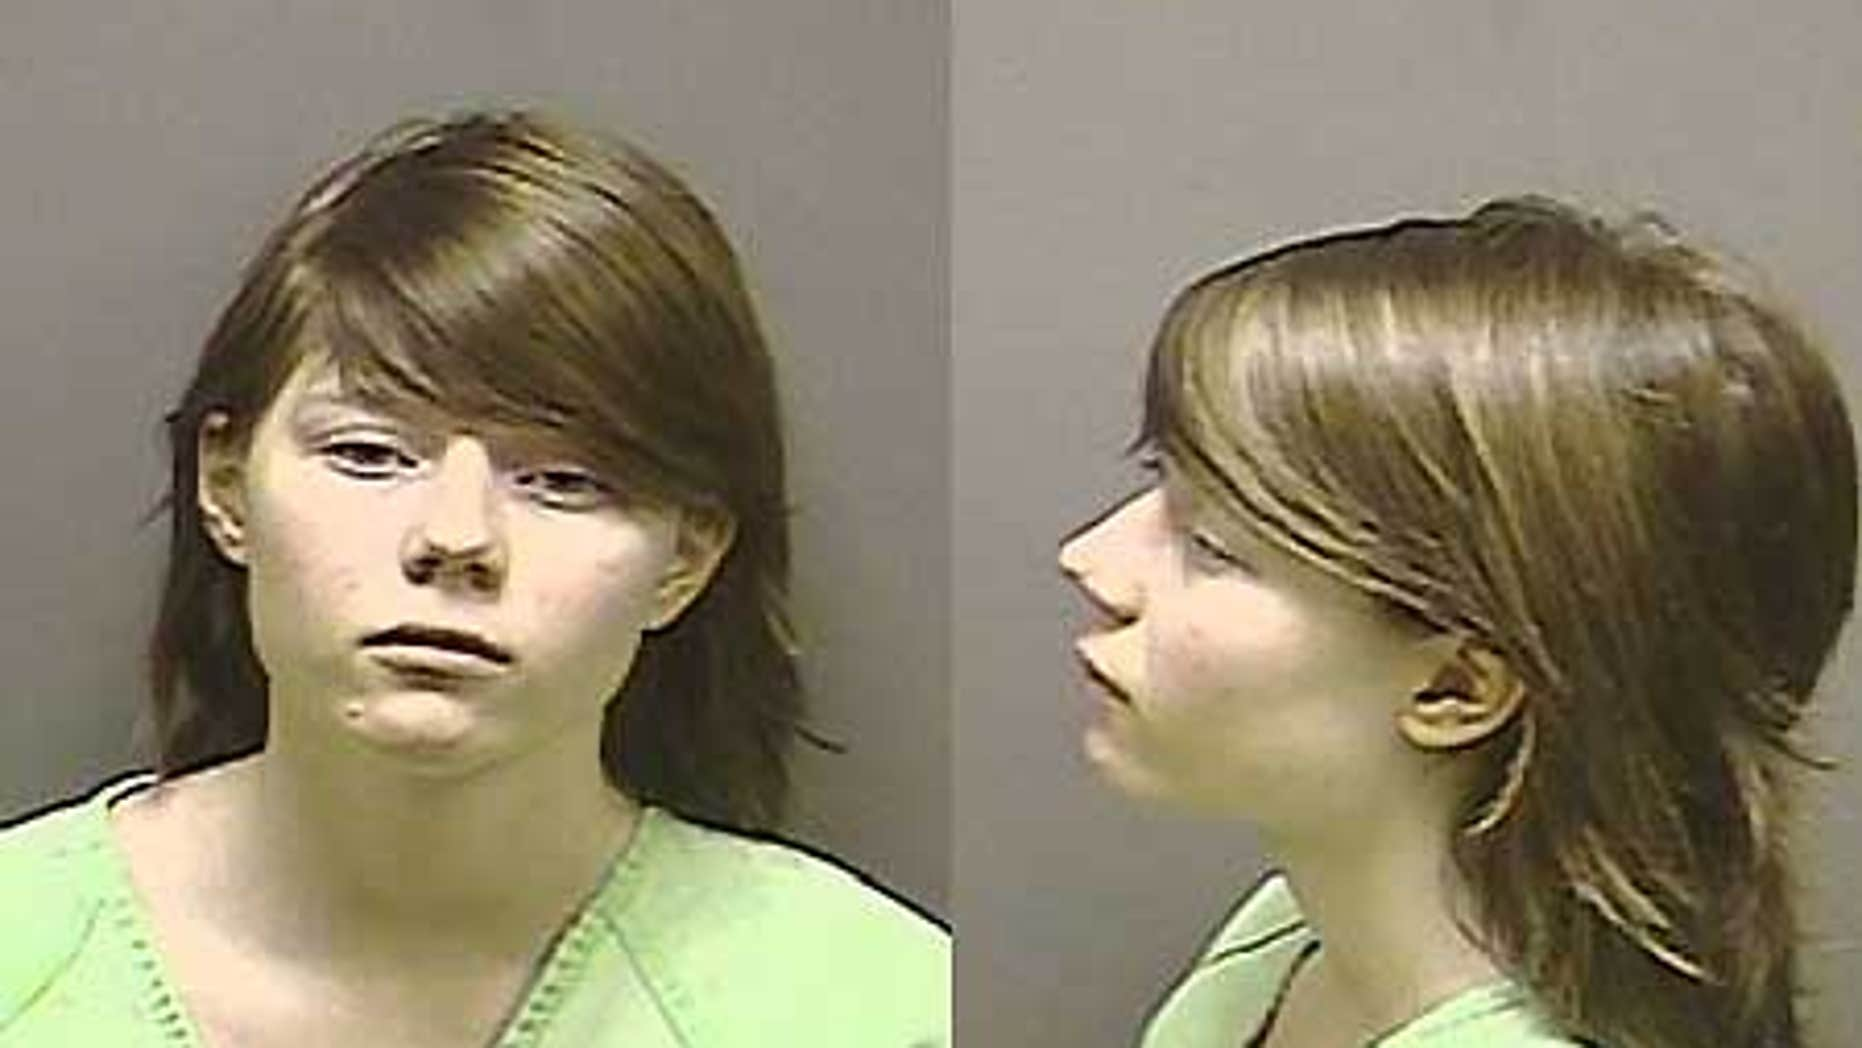 Missouri Girl Allegedly Killed 'to Know What It Felt Like